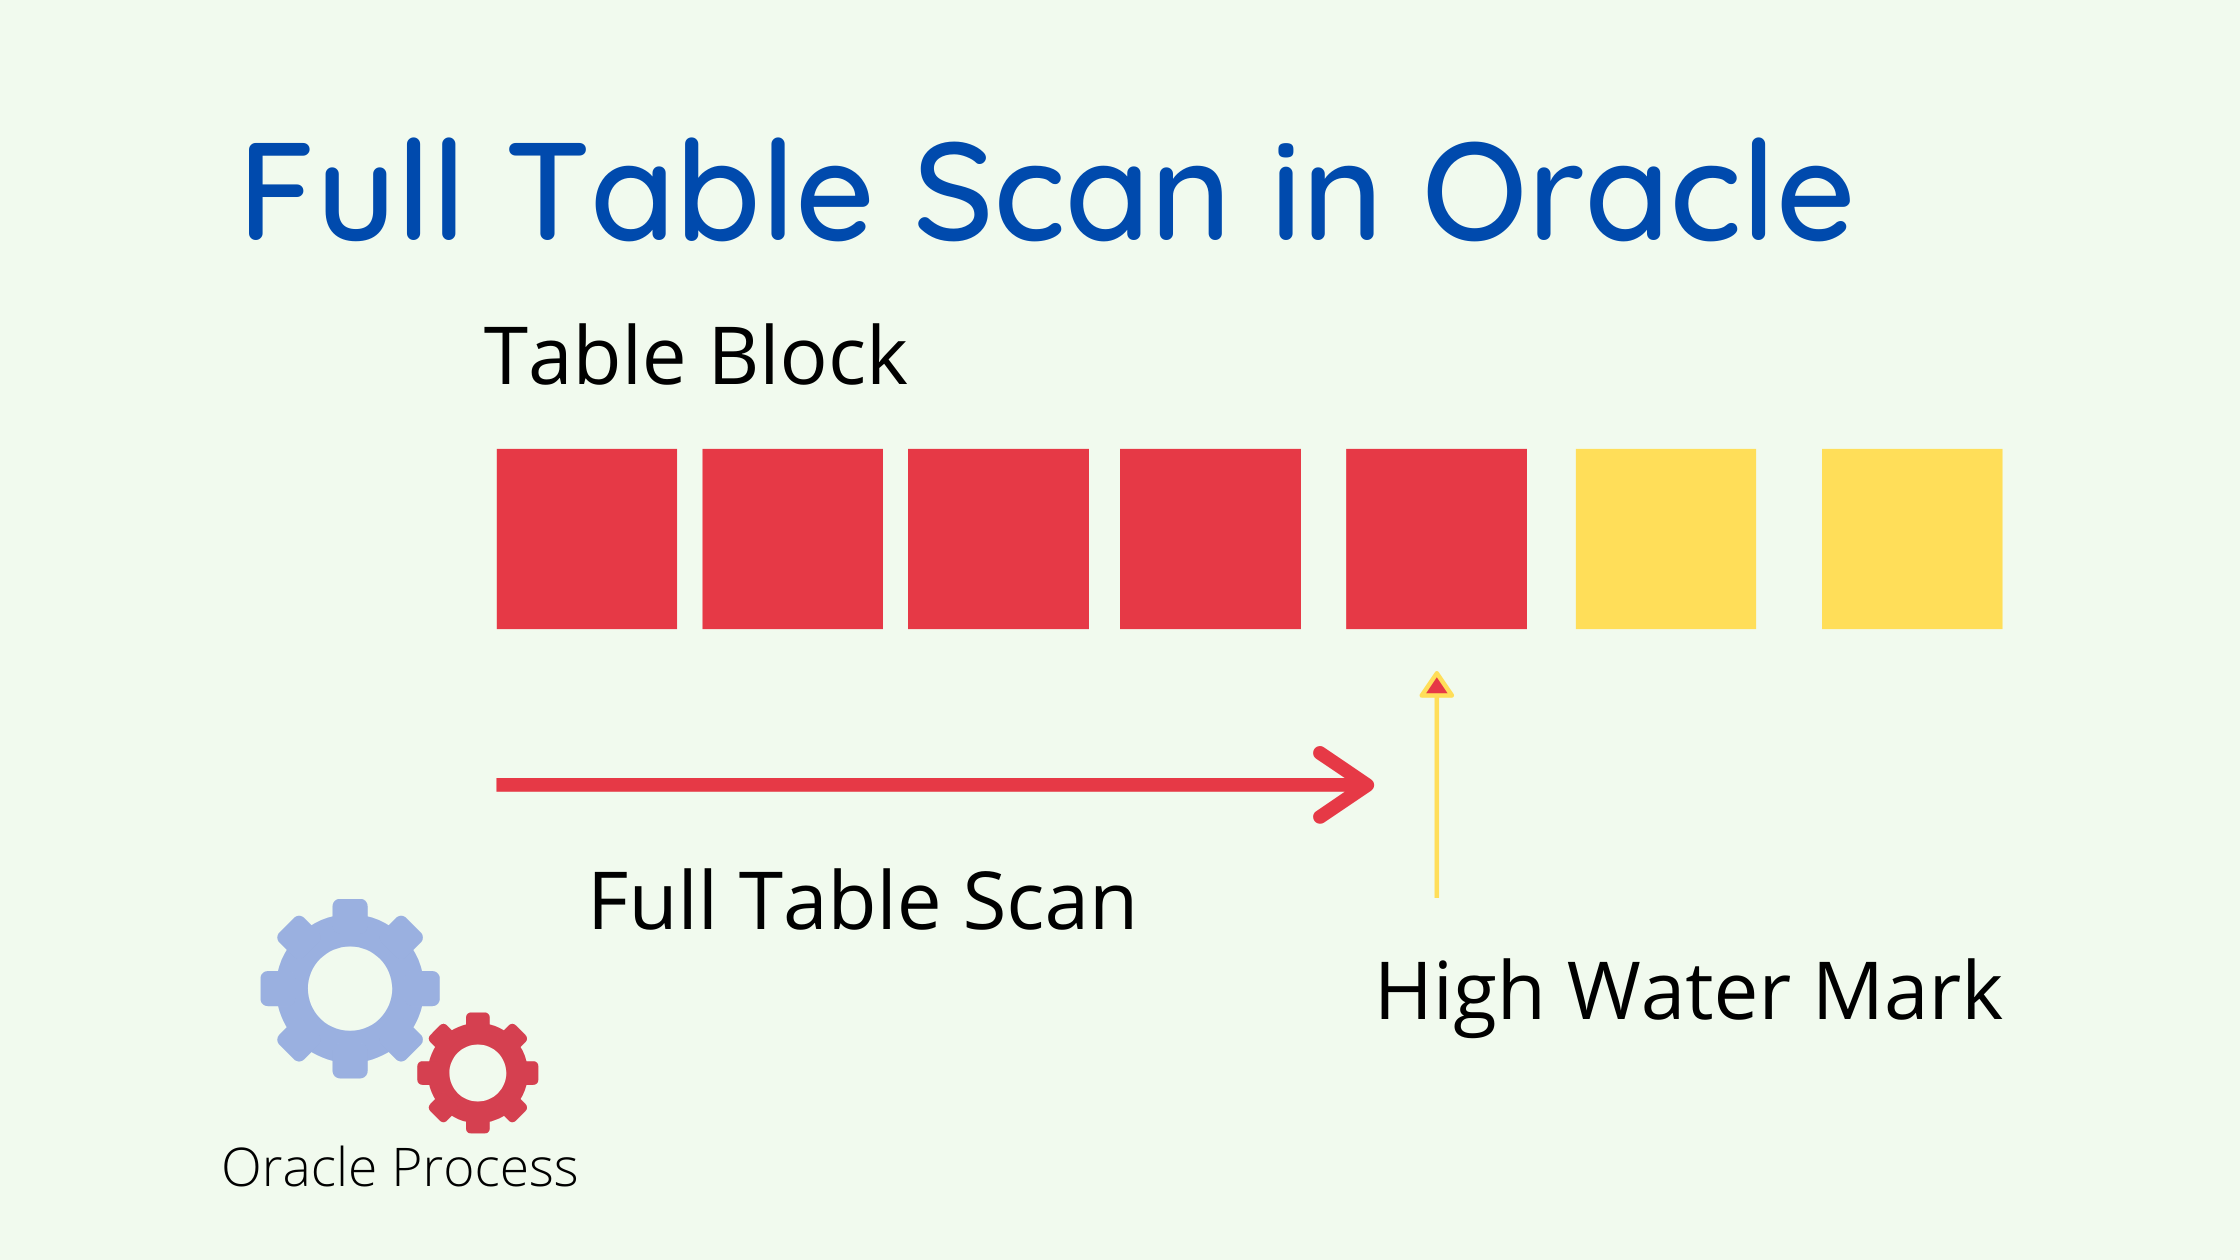 Query to find full table scans in oracle